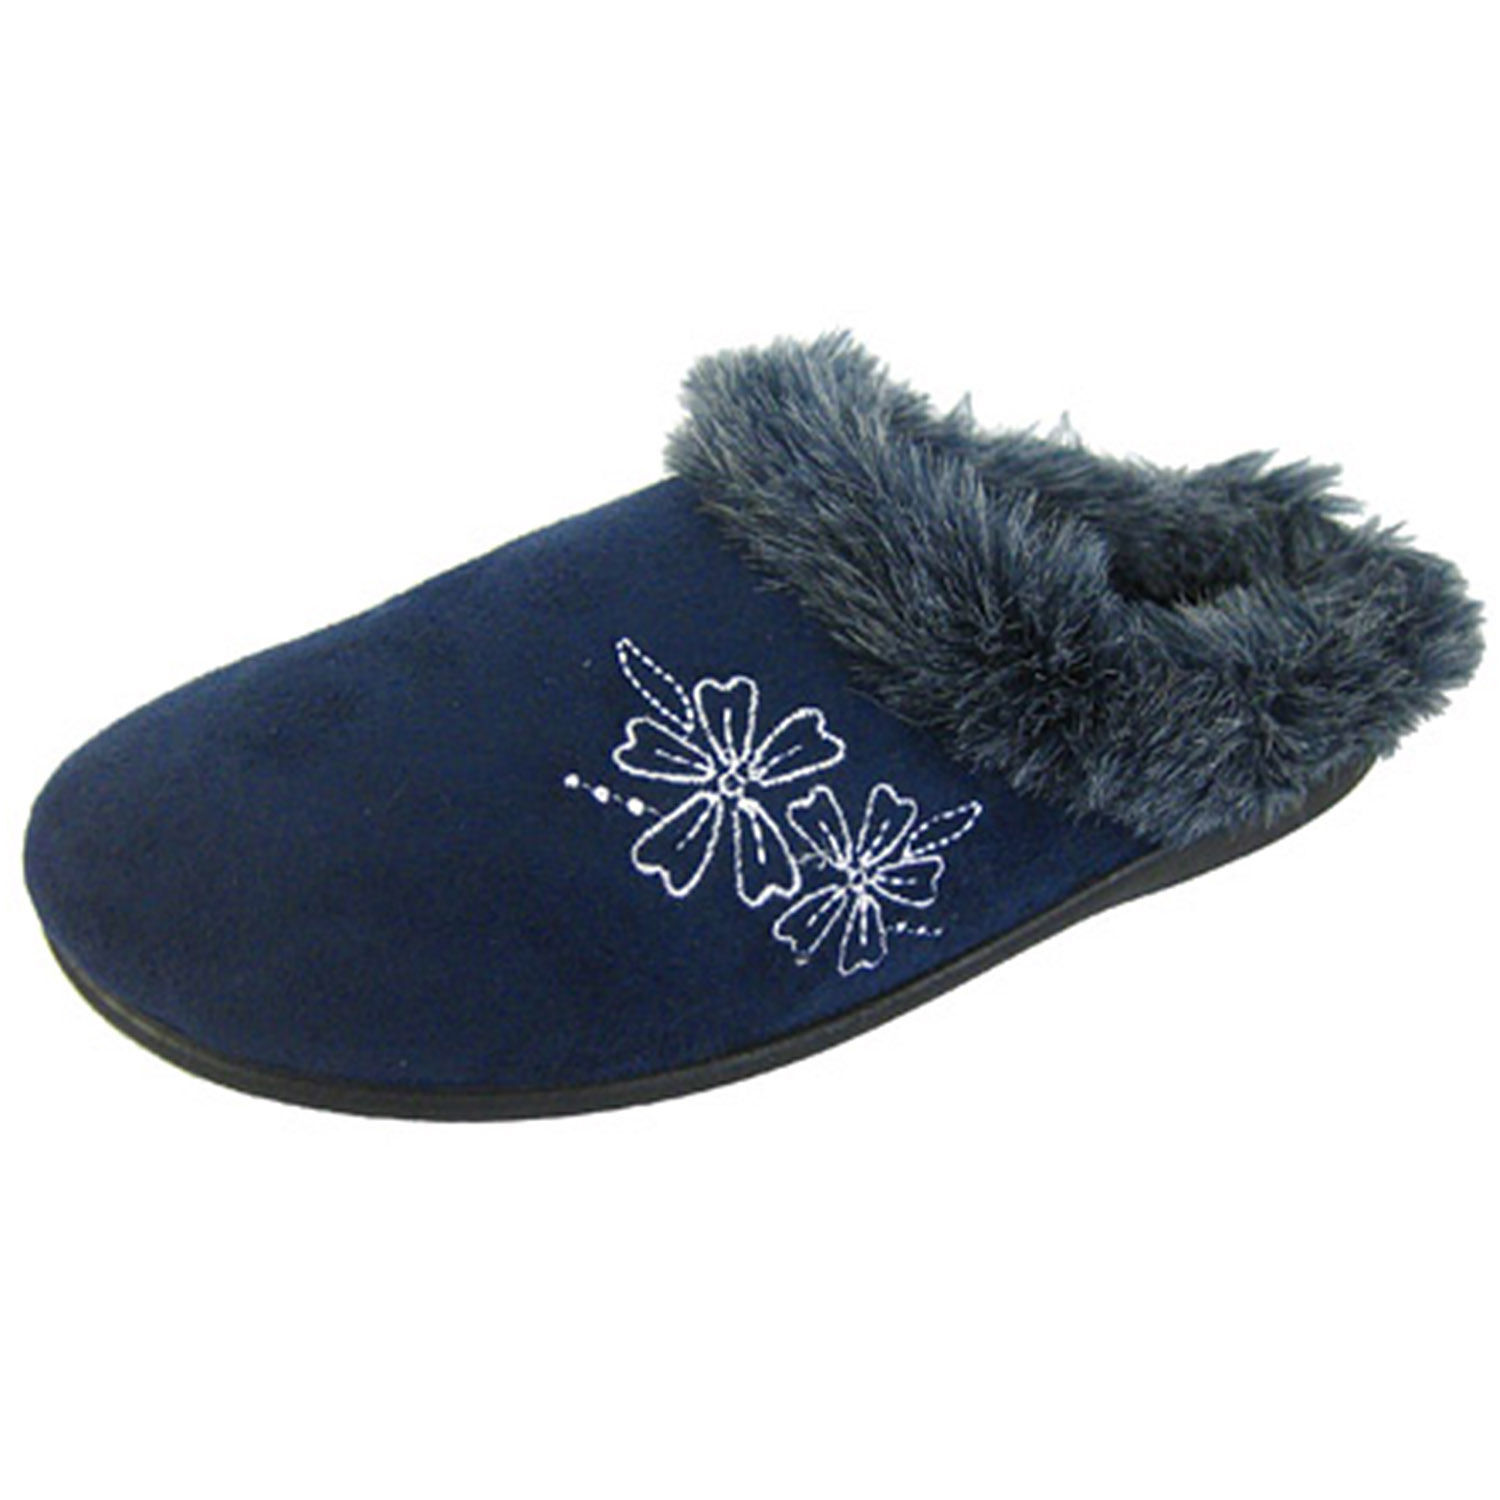 Mens Boot Slippers Navy Blue Patterned Warm Lined Slip On Coolers